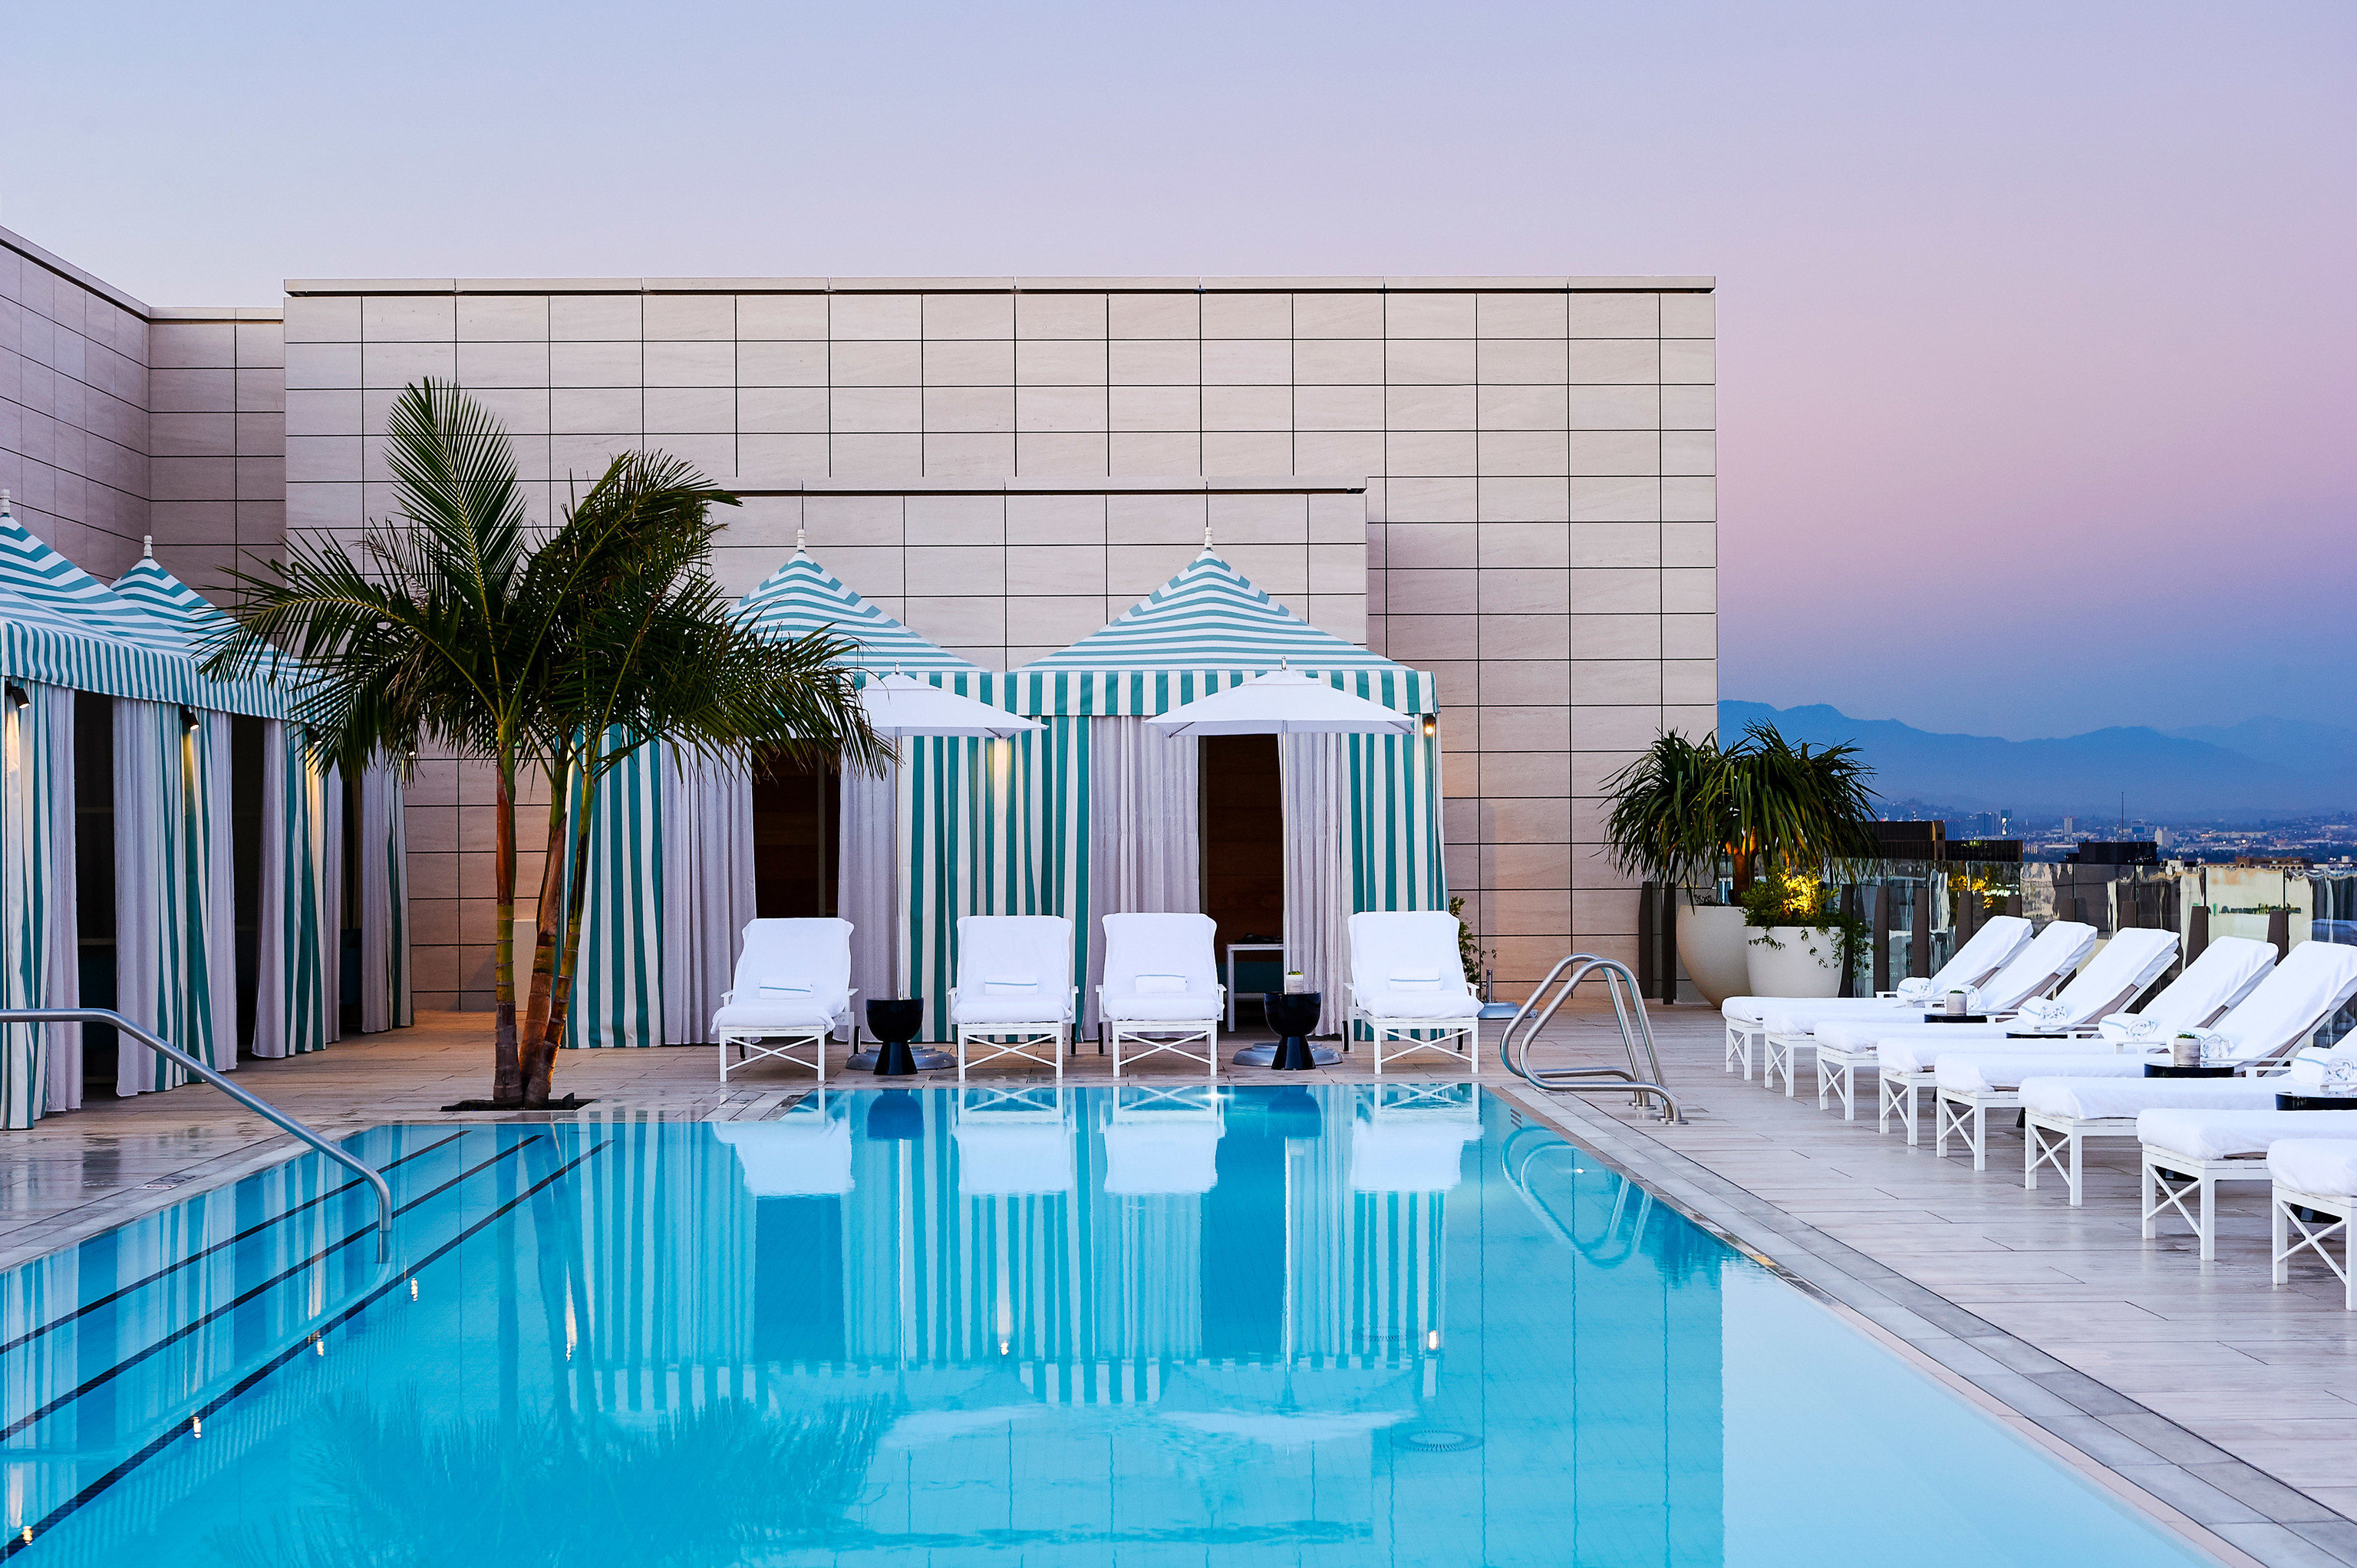 Boutique Hotels Hotels Luxury Travel sky chair swimming pool water property Architecture leisure Resort hotel real estate condominium Pool vacation estate leisure centre apartment resort town building Villa corporate headquarters facade area furniture Deck